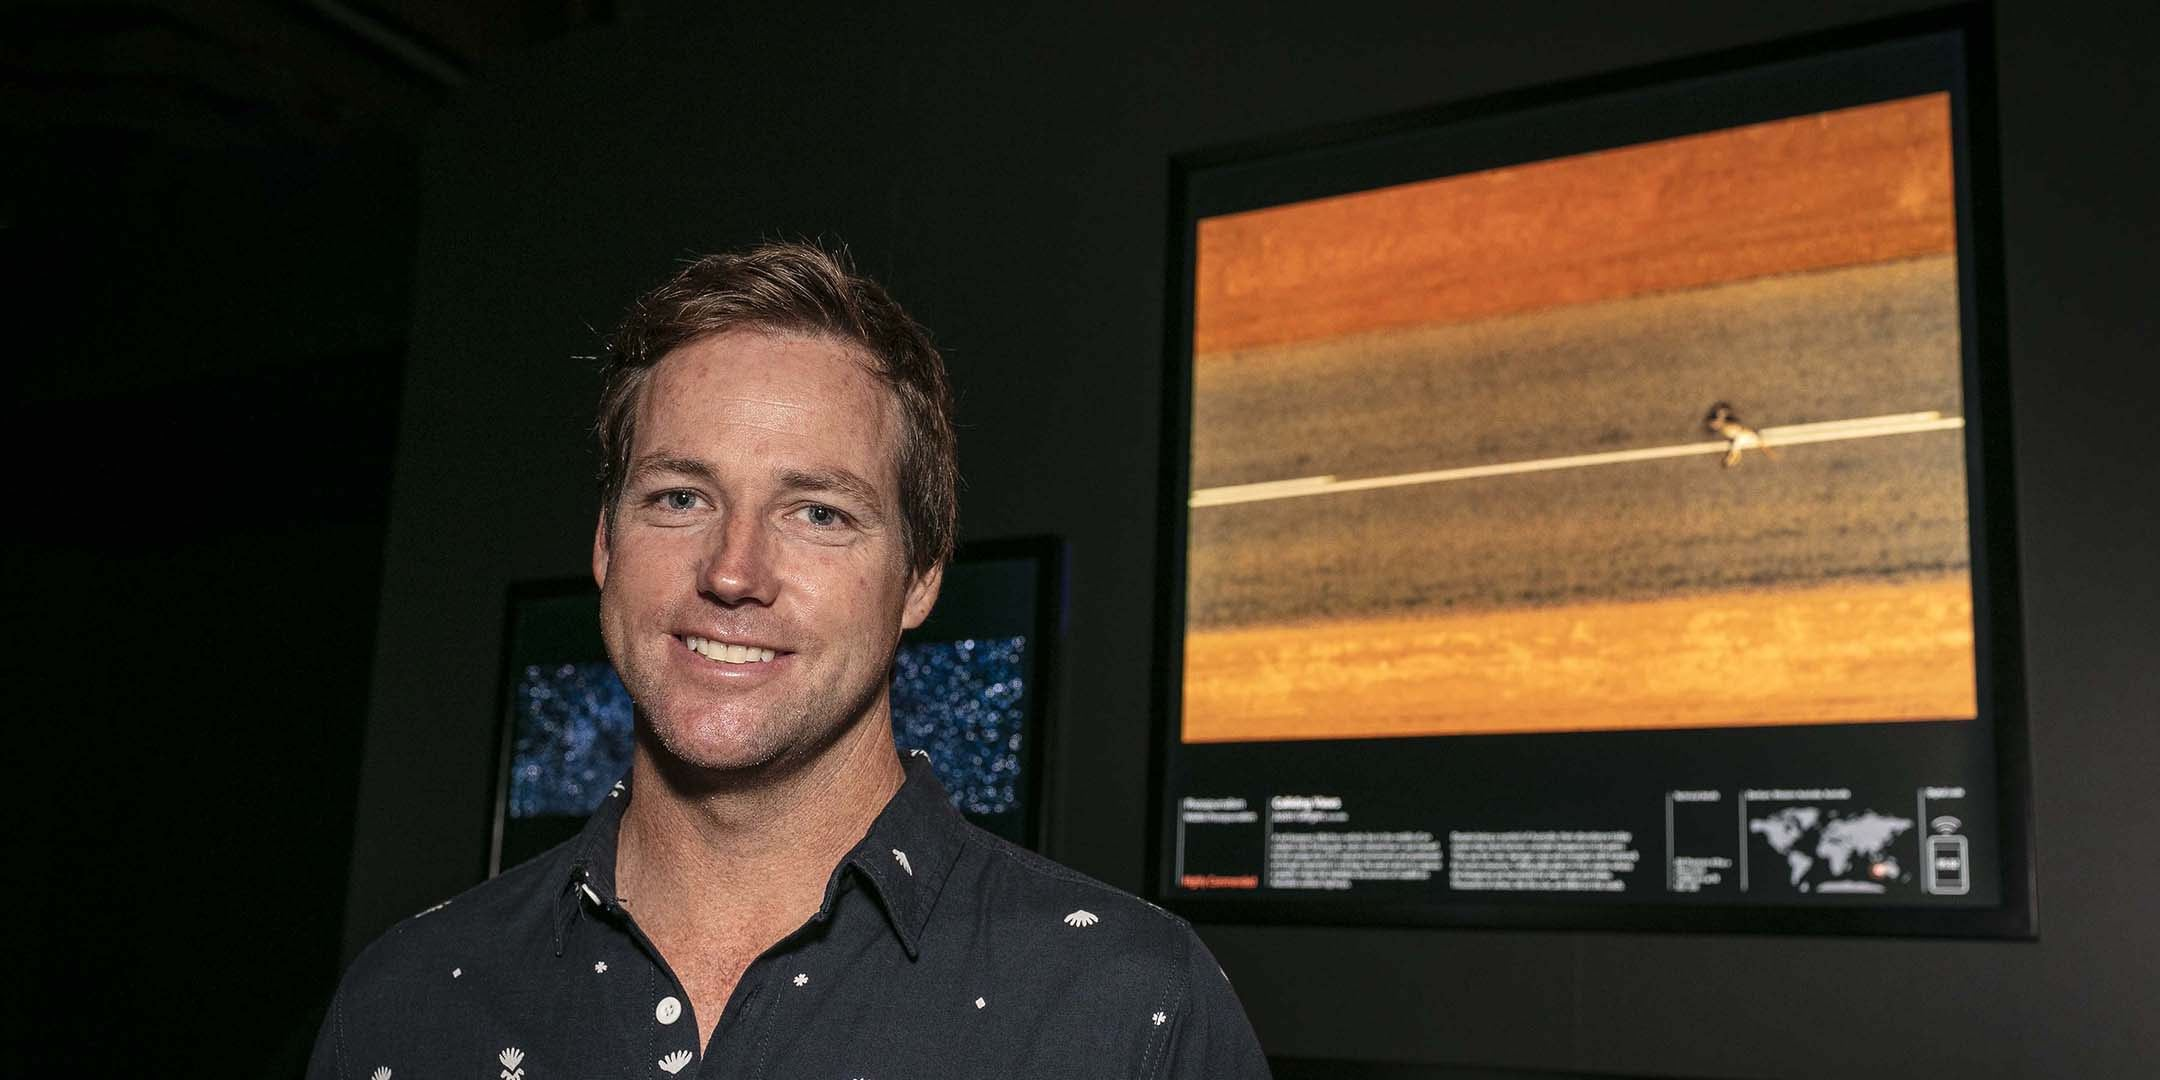 Photojournalist Justin Gilligan standing in front of his photograph, Colliding Views